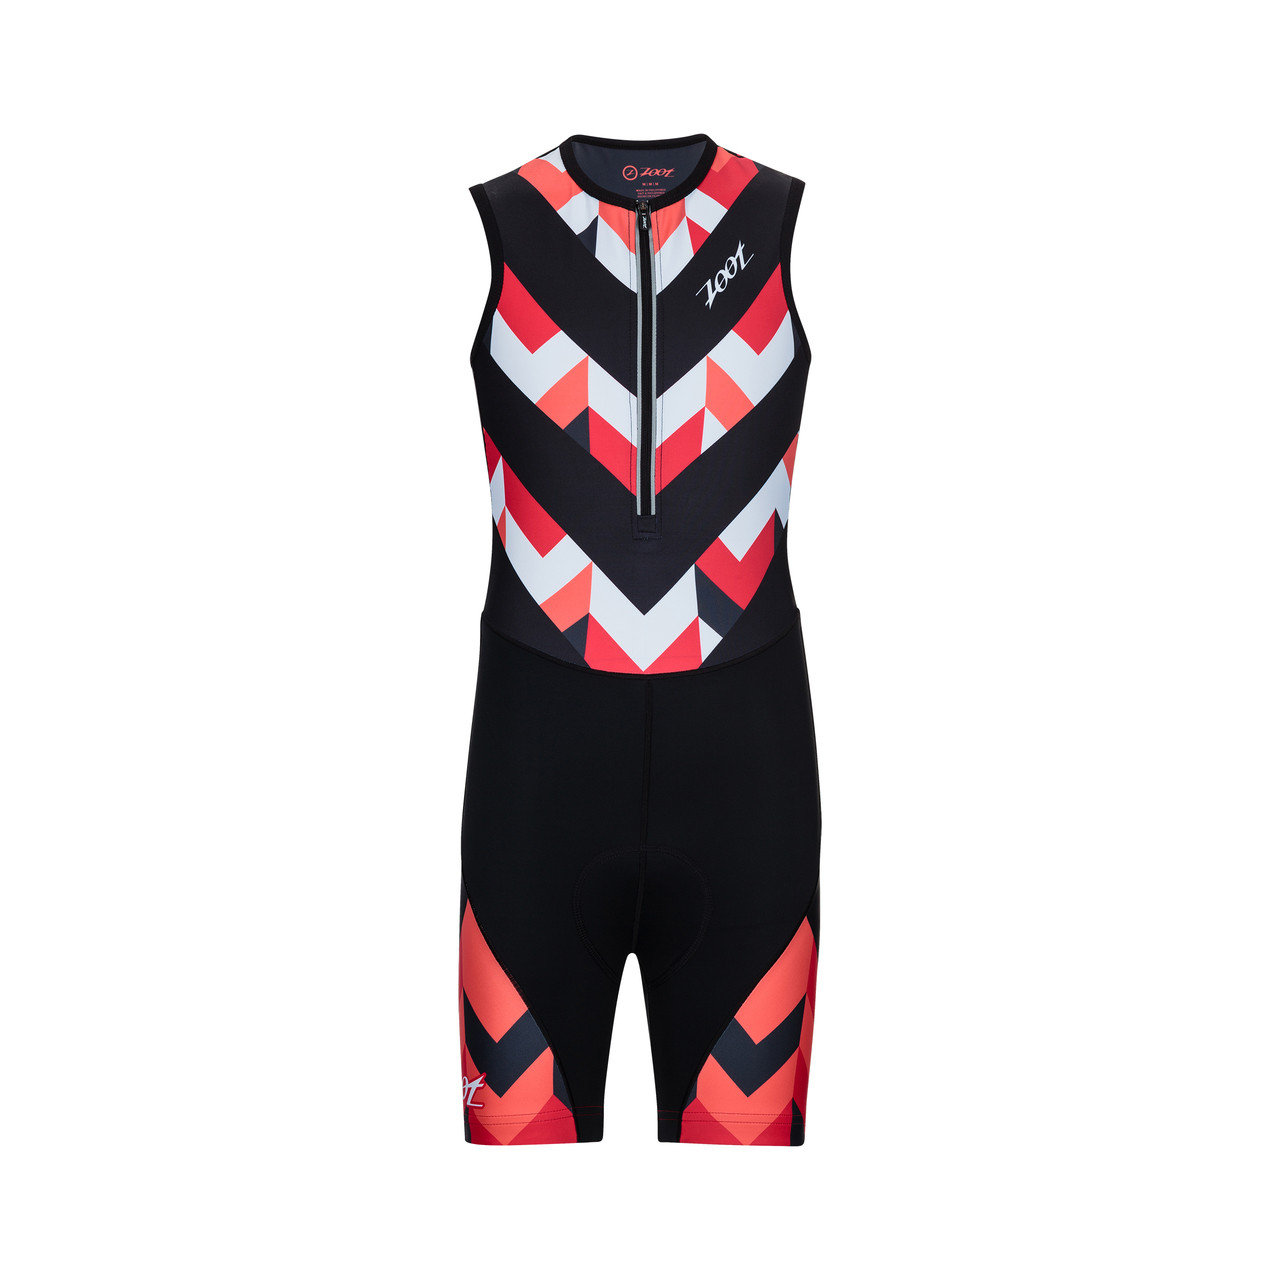 ae5ff857a Zoot Kid s Protege Tri Racesuit